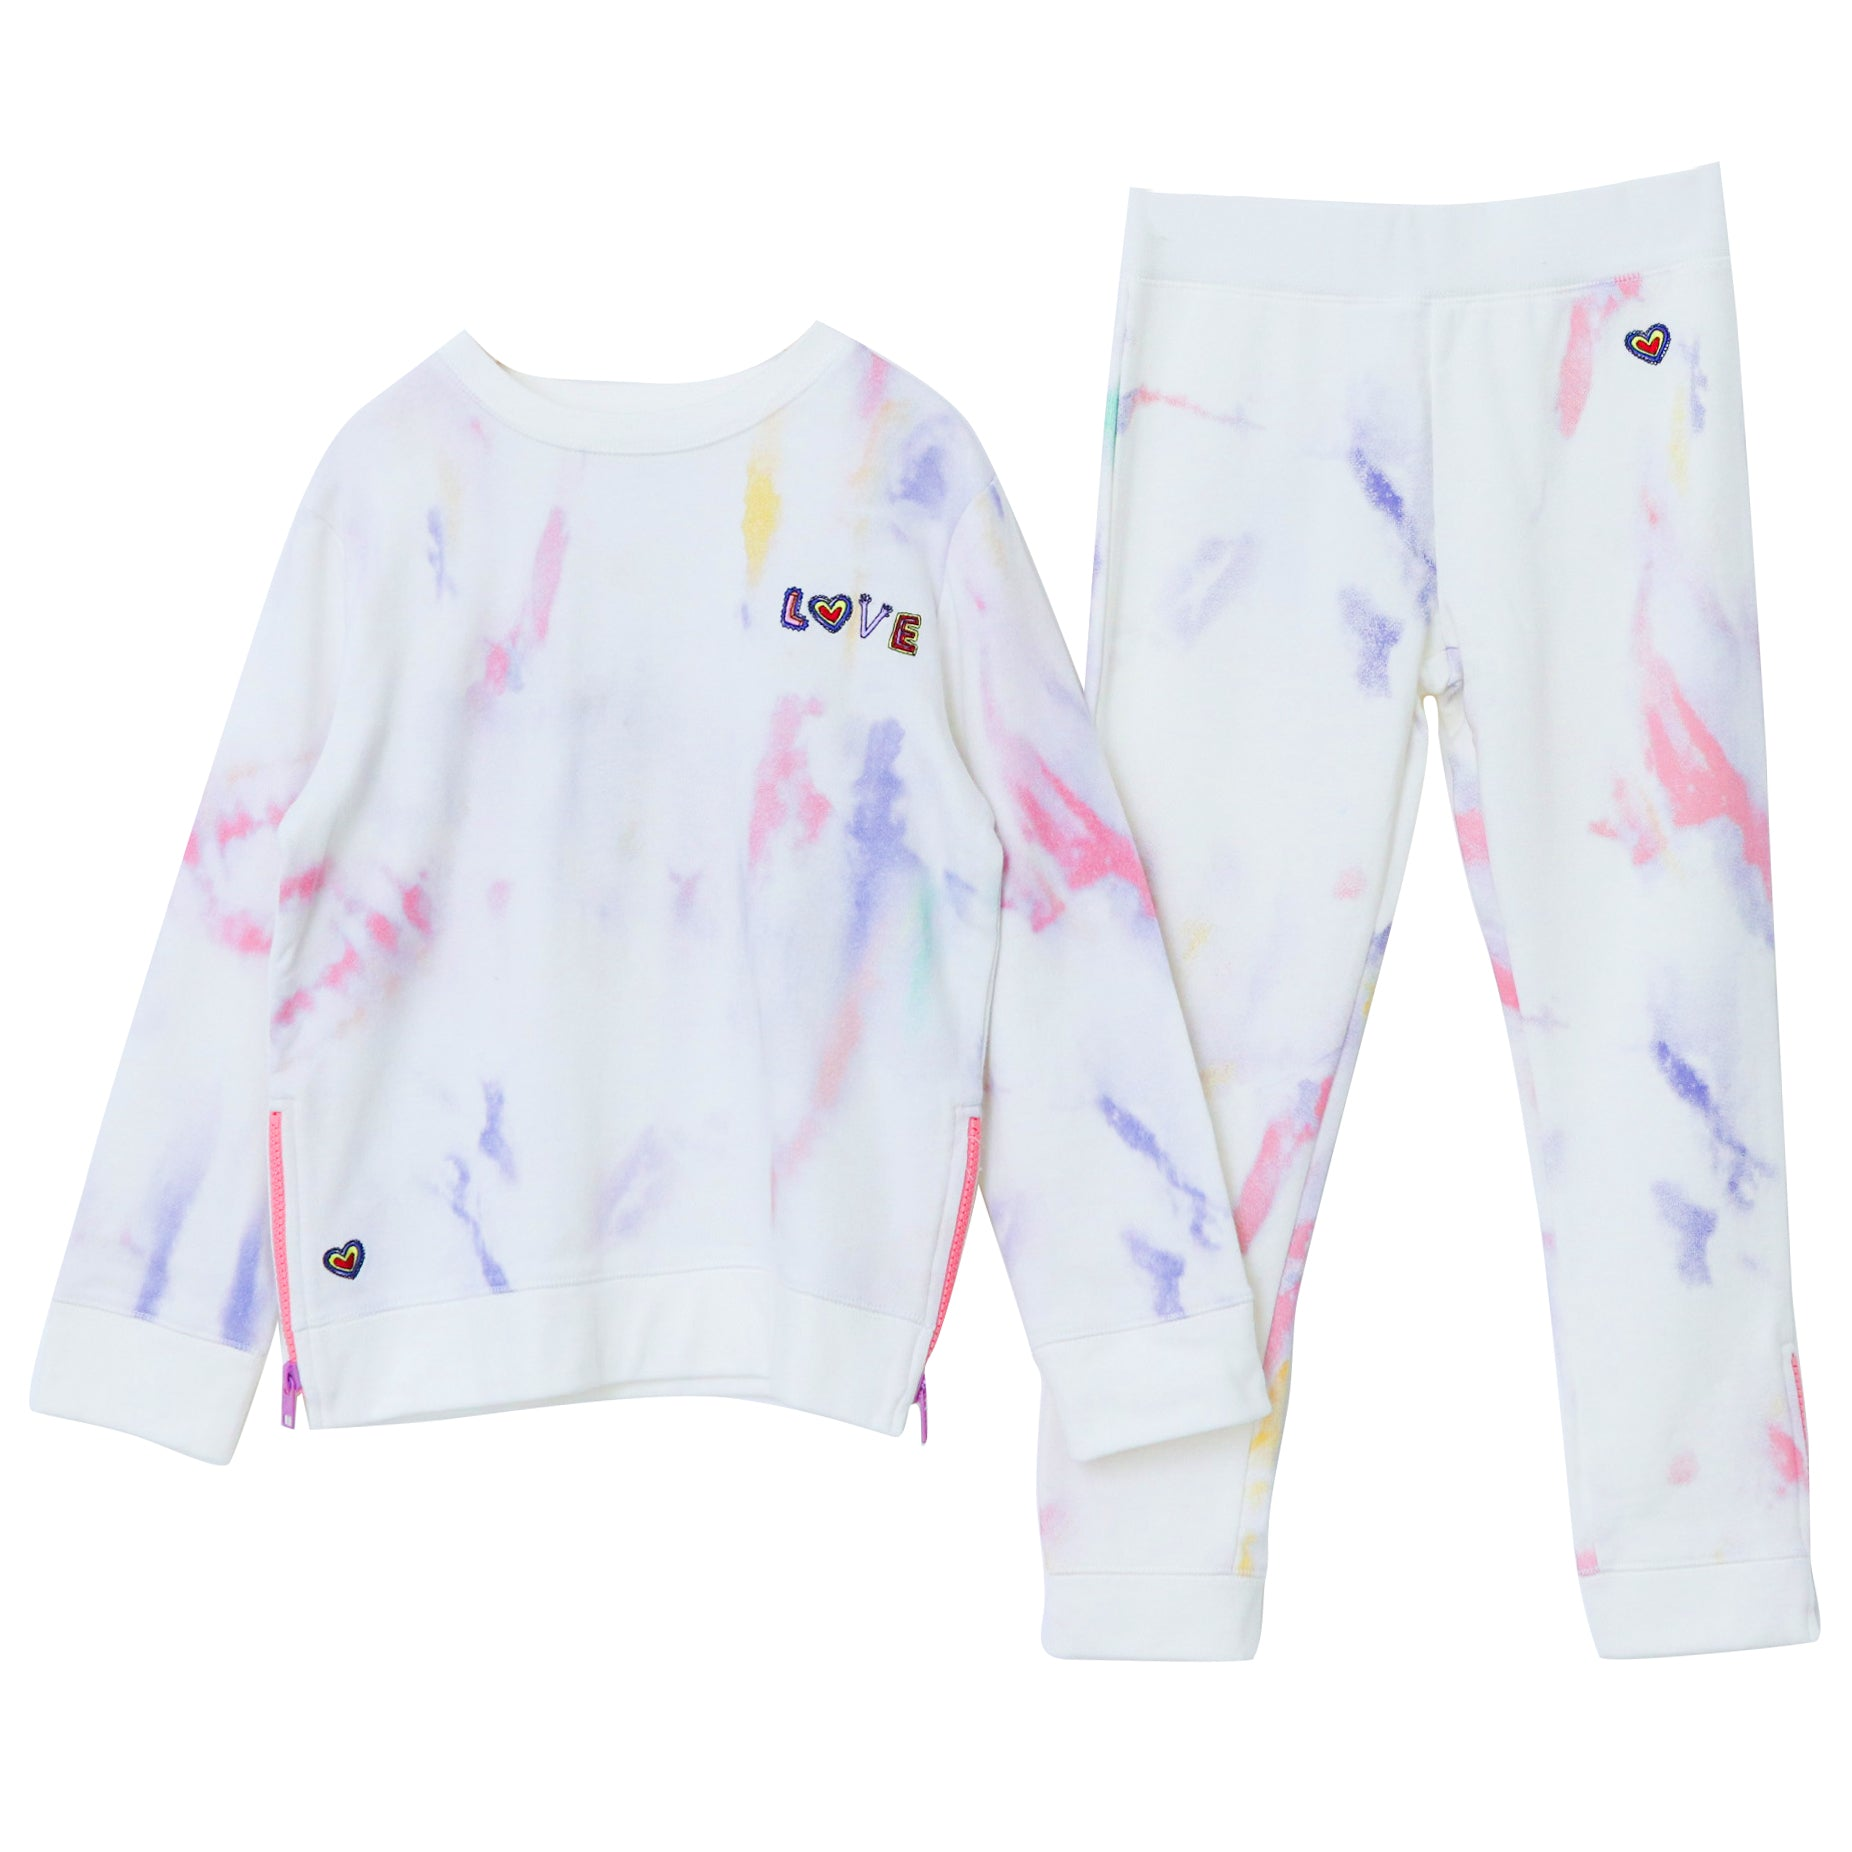 yoya,kids, girls, stella mccartney, summer, lightweight, casual, lounge, tie dye, embroidered, slogan, sweat shirt, joggers, outfit, set